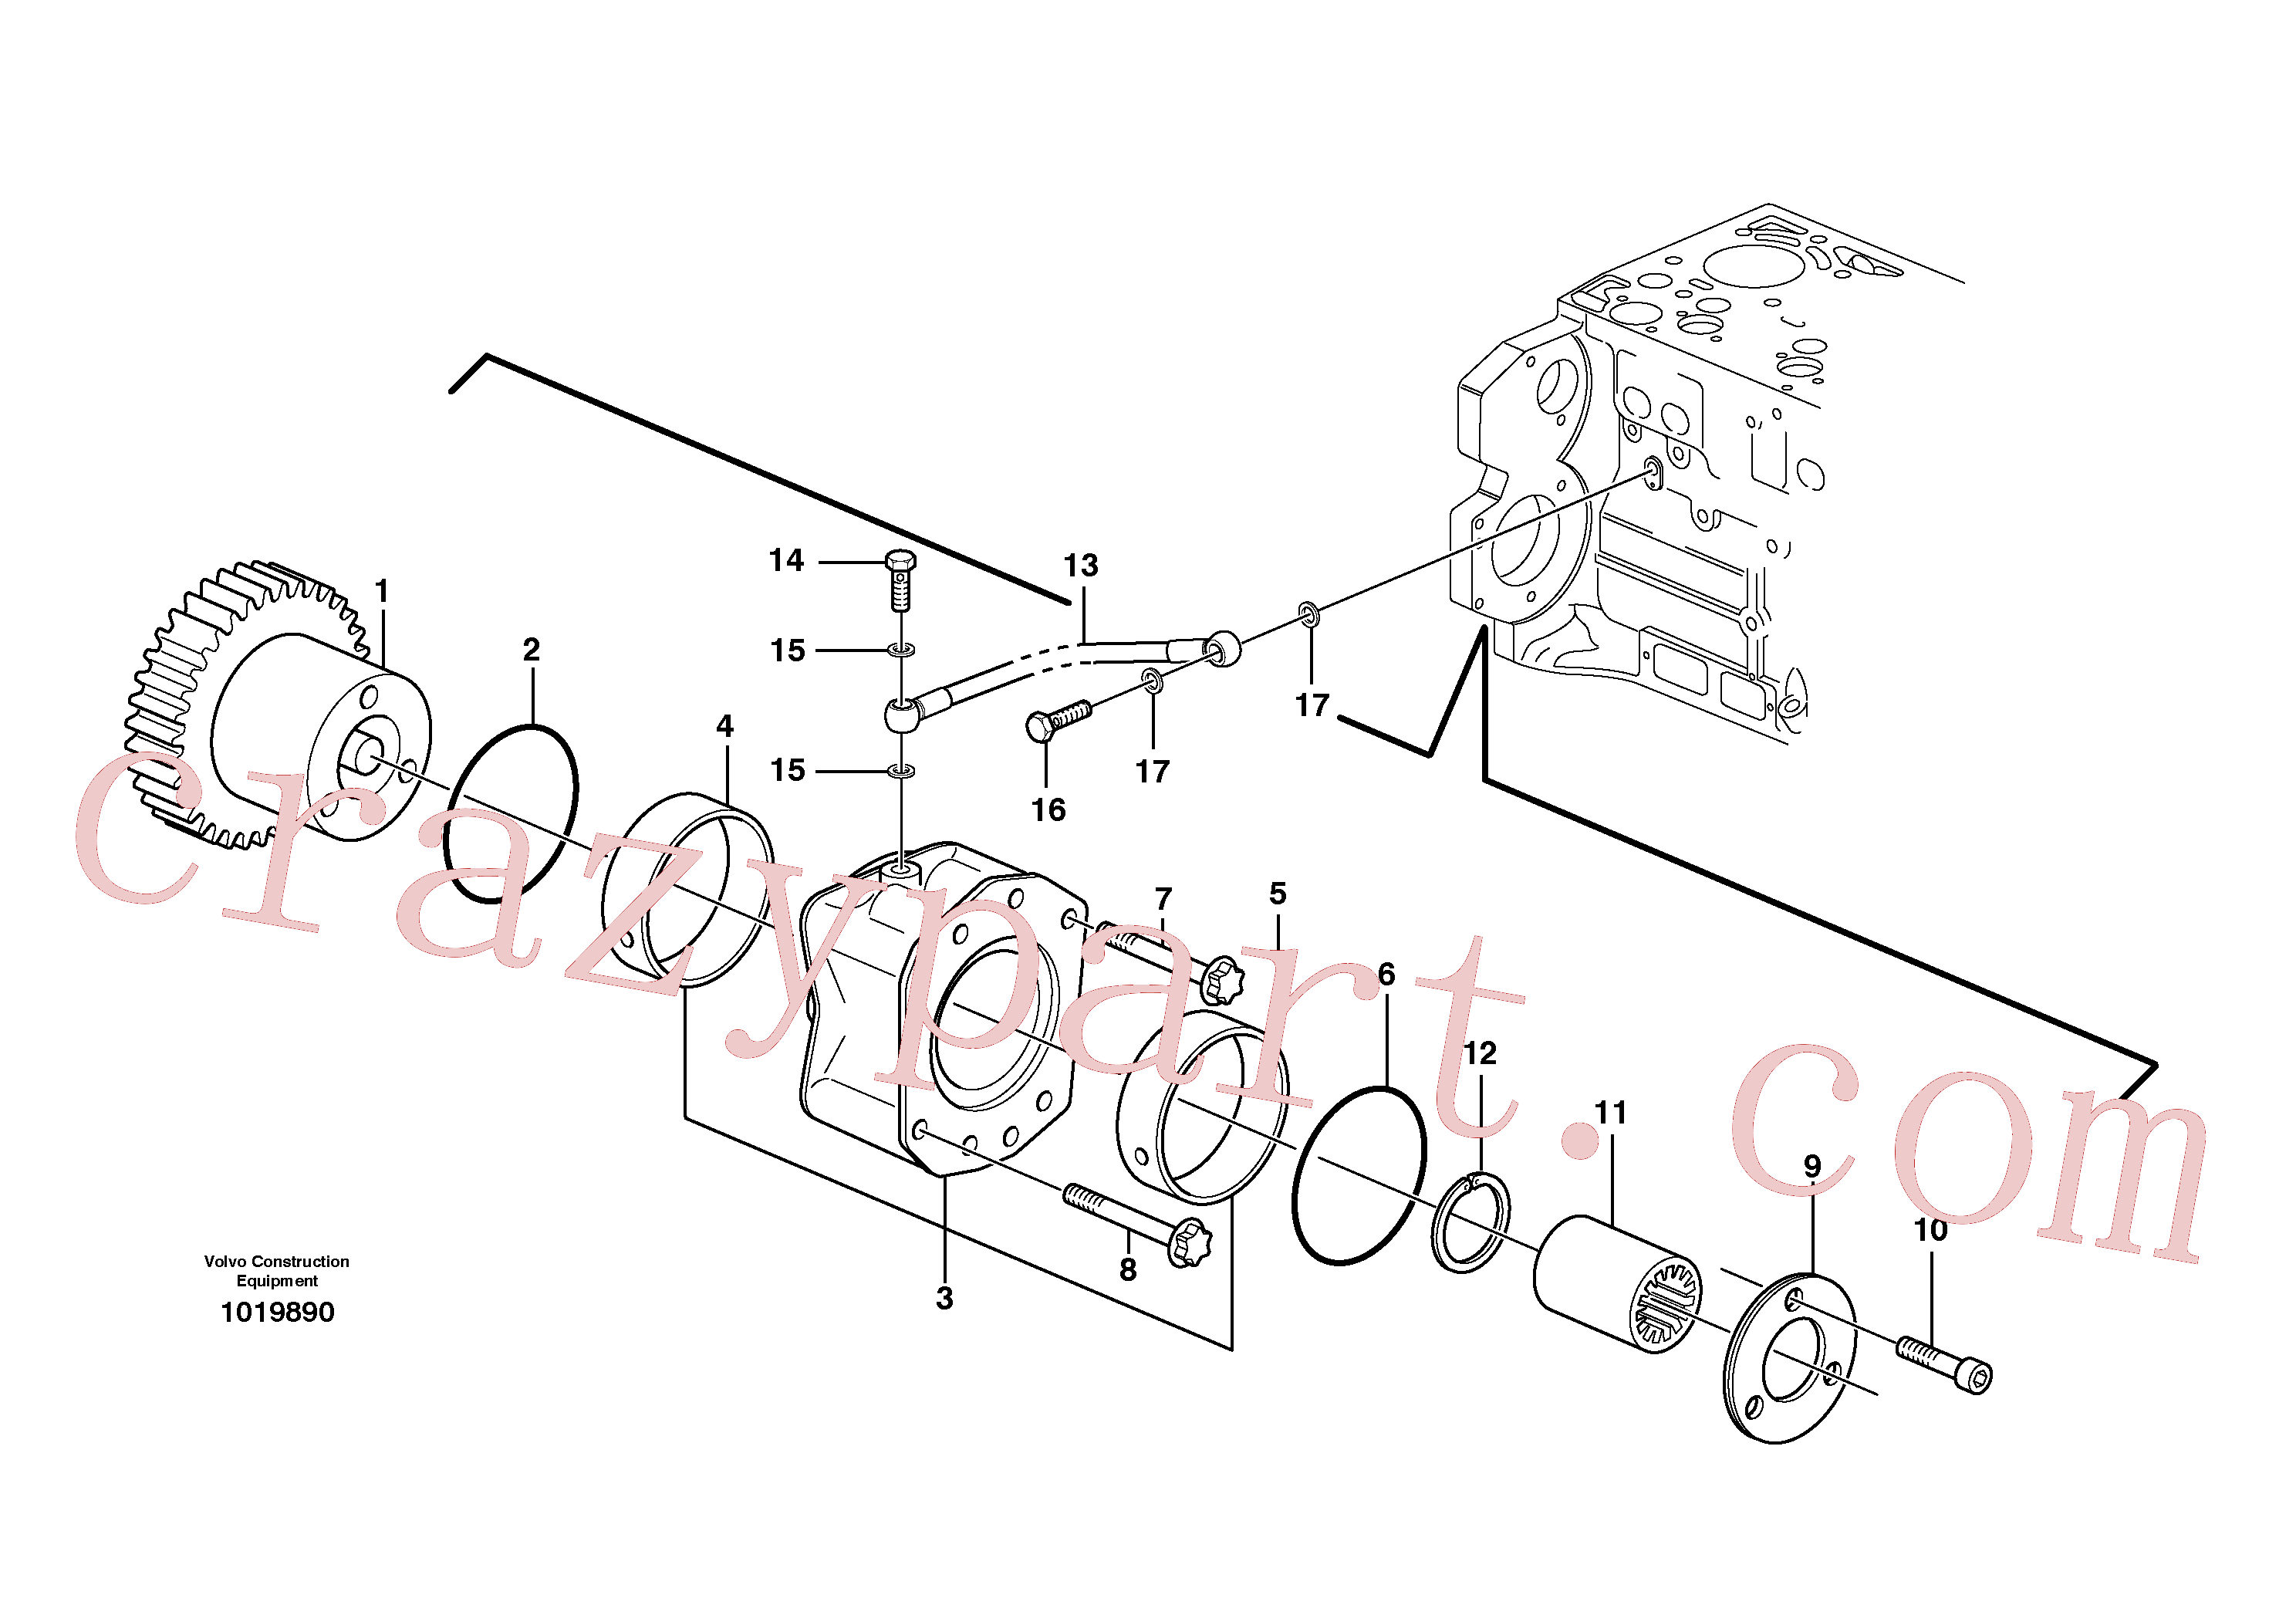 VOE20512957 for Volvo Pump drive power take-off(1019890 assembly)